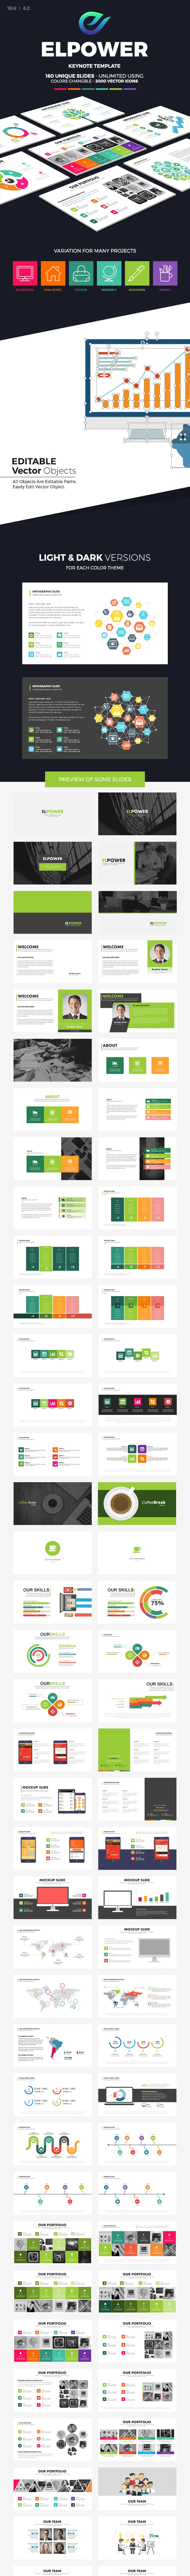 El Power Keynote Presentation Template - Creative Keynote Templates